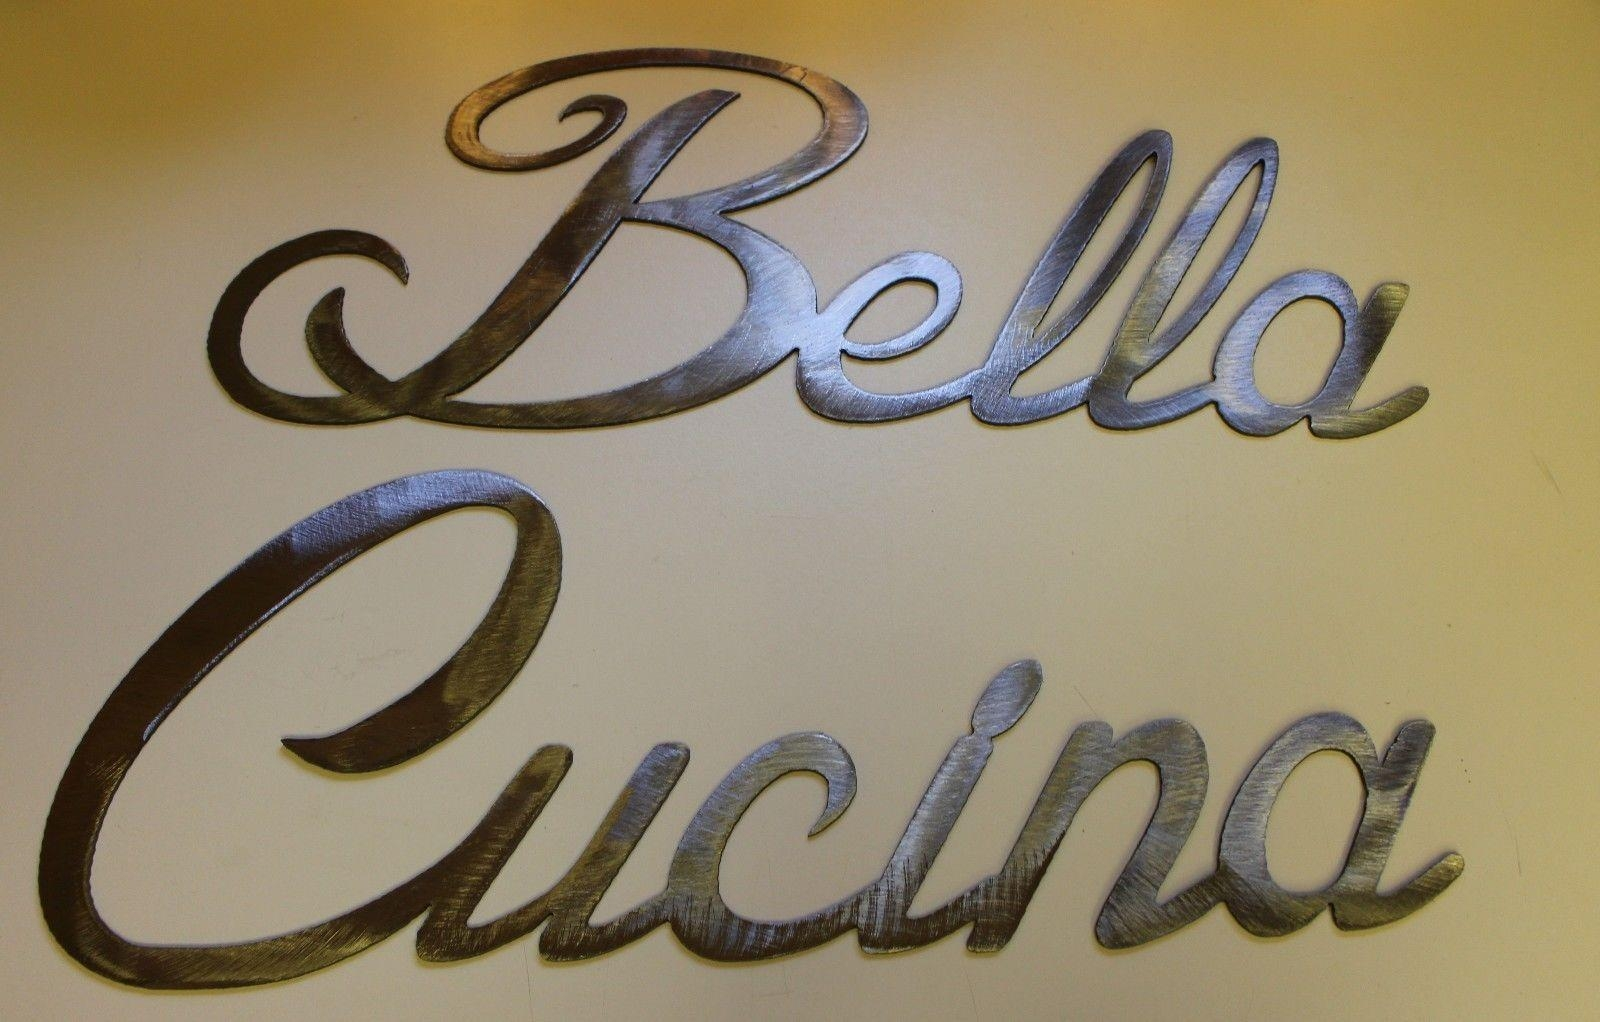 Bella Cucina Words Large Set Metal Wall Art Accents Silver  Words With Regard To Cucina Wall Art (Image 2 of 20)